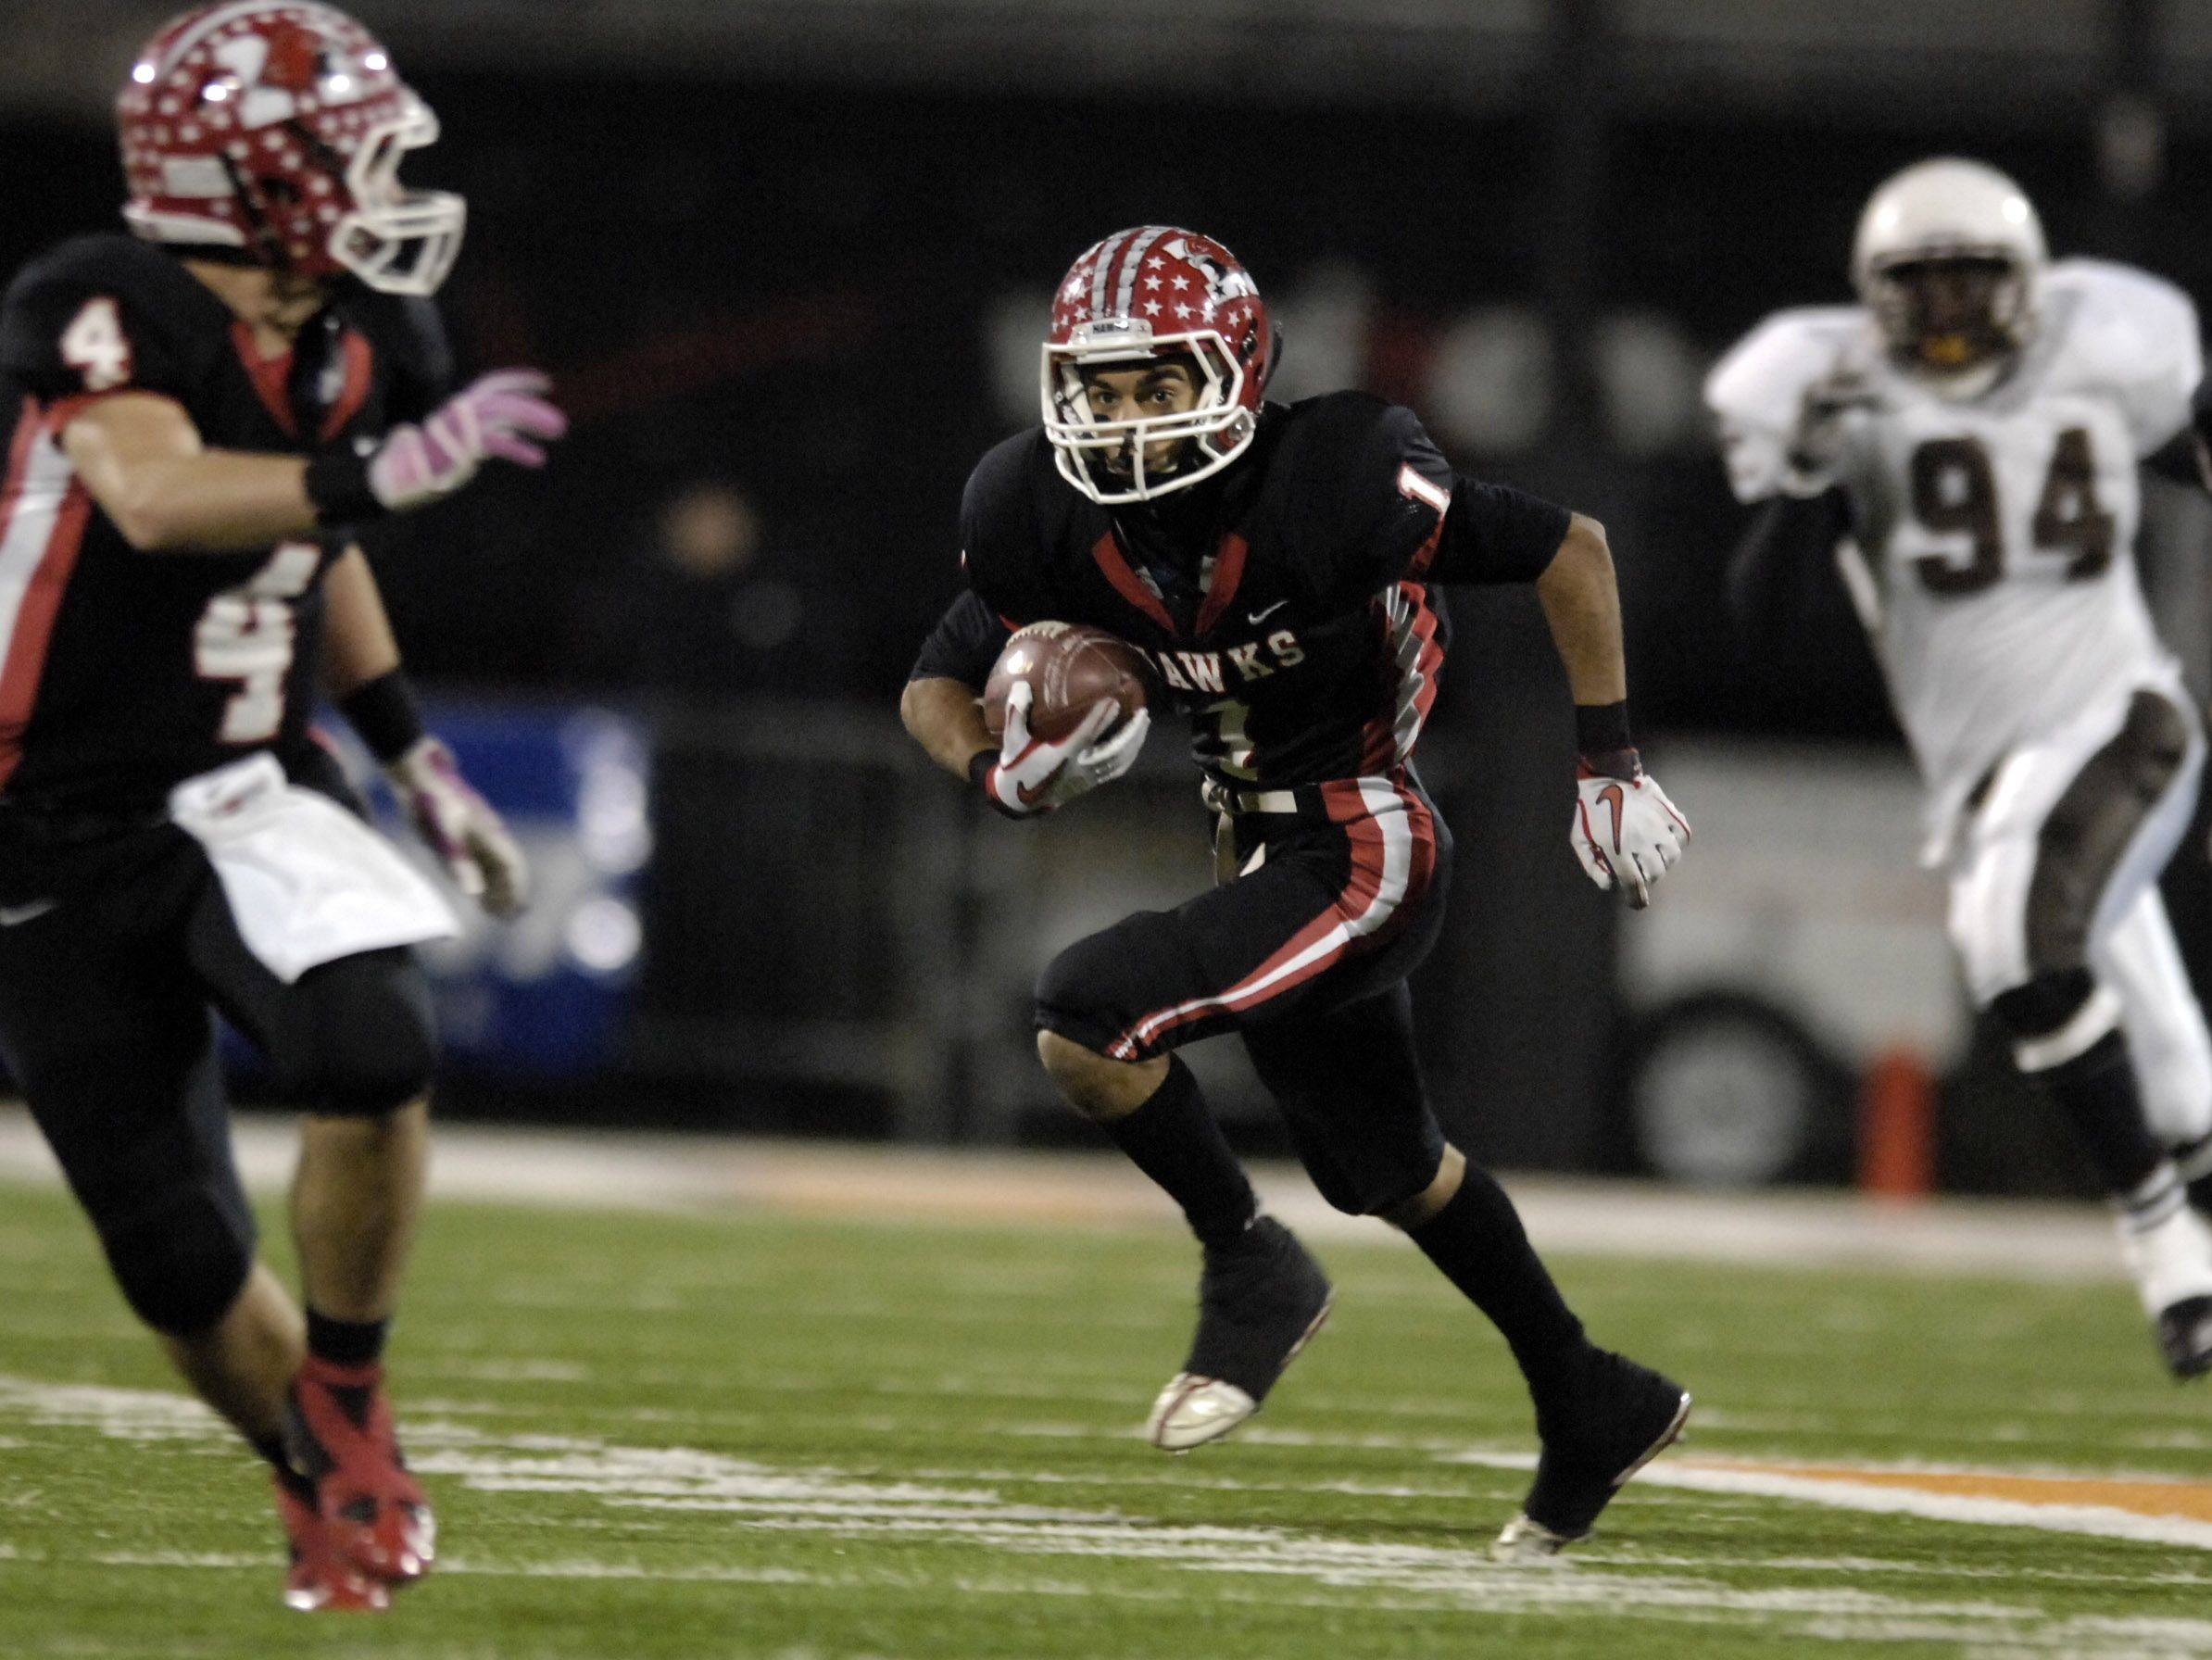 Maine South Imran Khan turns a short catch into a long touchdown run against Mt. Carmel during the Class 8A state final in Champaign Saturday.